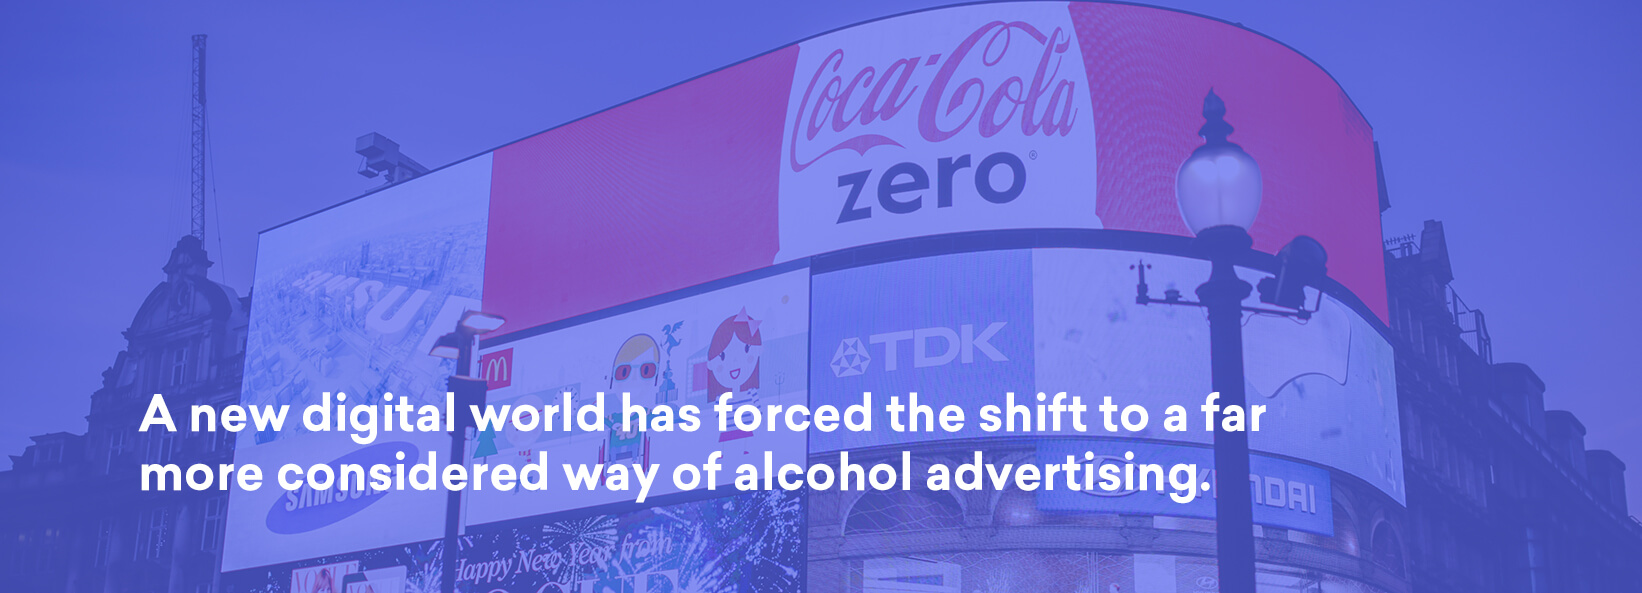 marketing alcohol brands